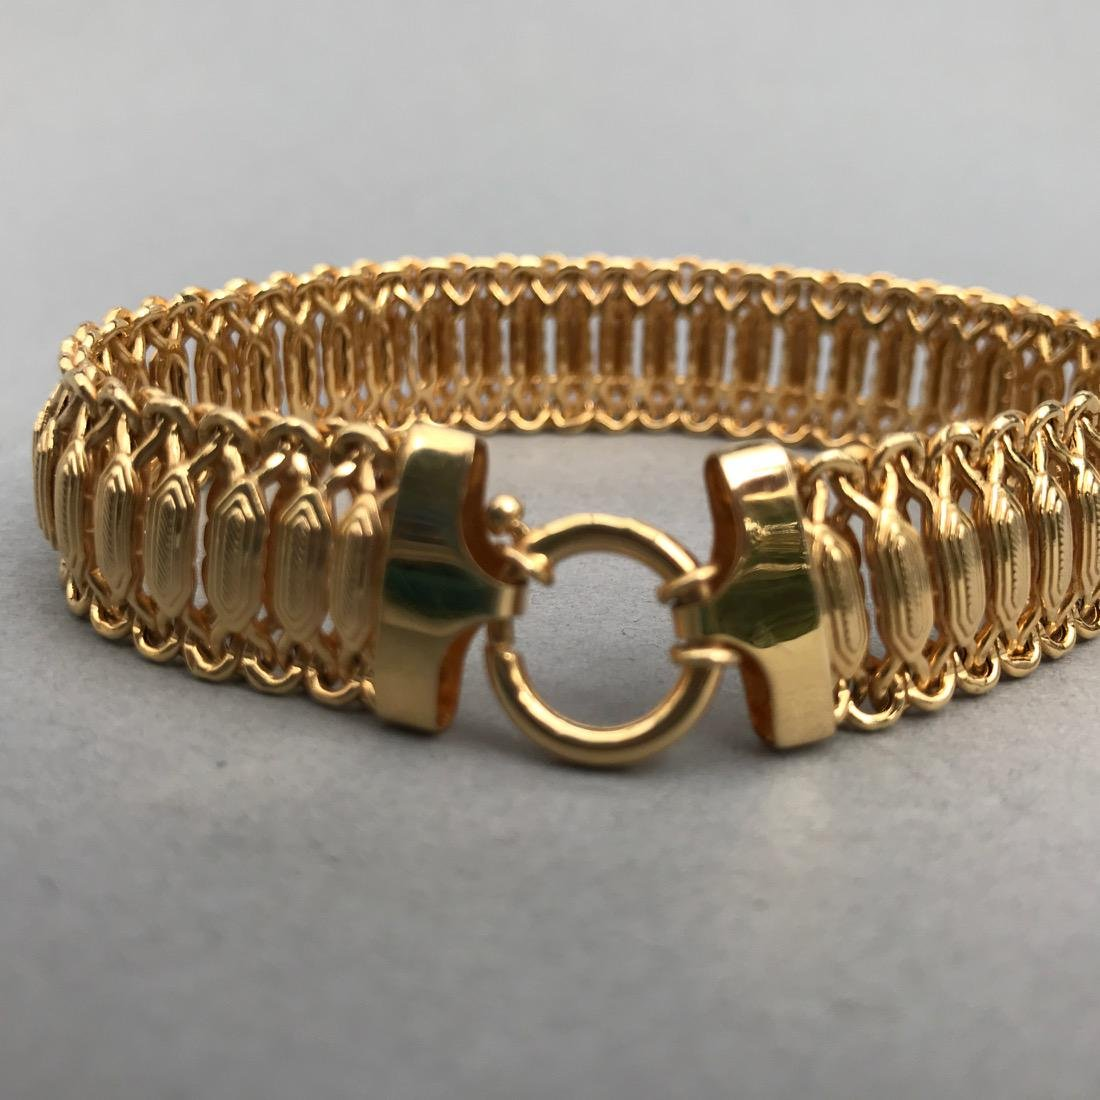 14K Gold Bracelet Beautiful Detail - 2